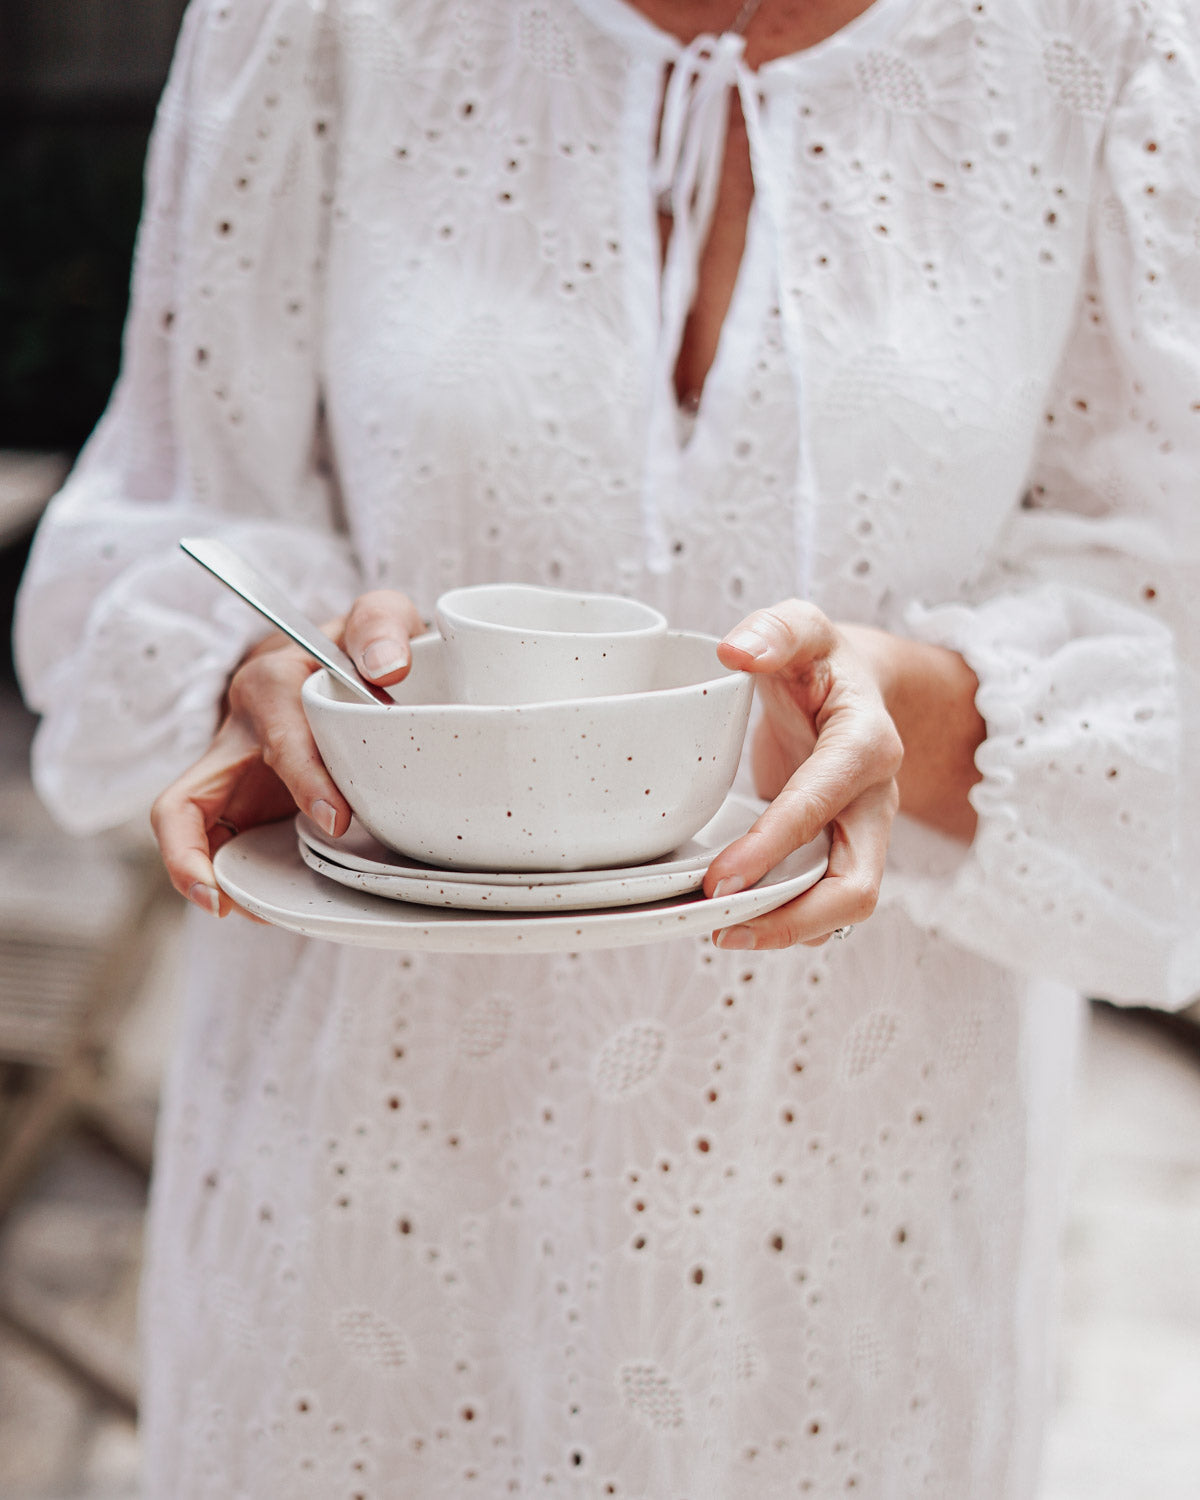 Holding a stack of handmade ceramic plates and bowls